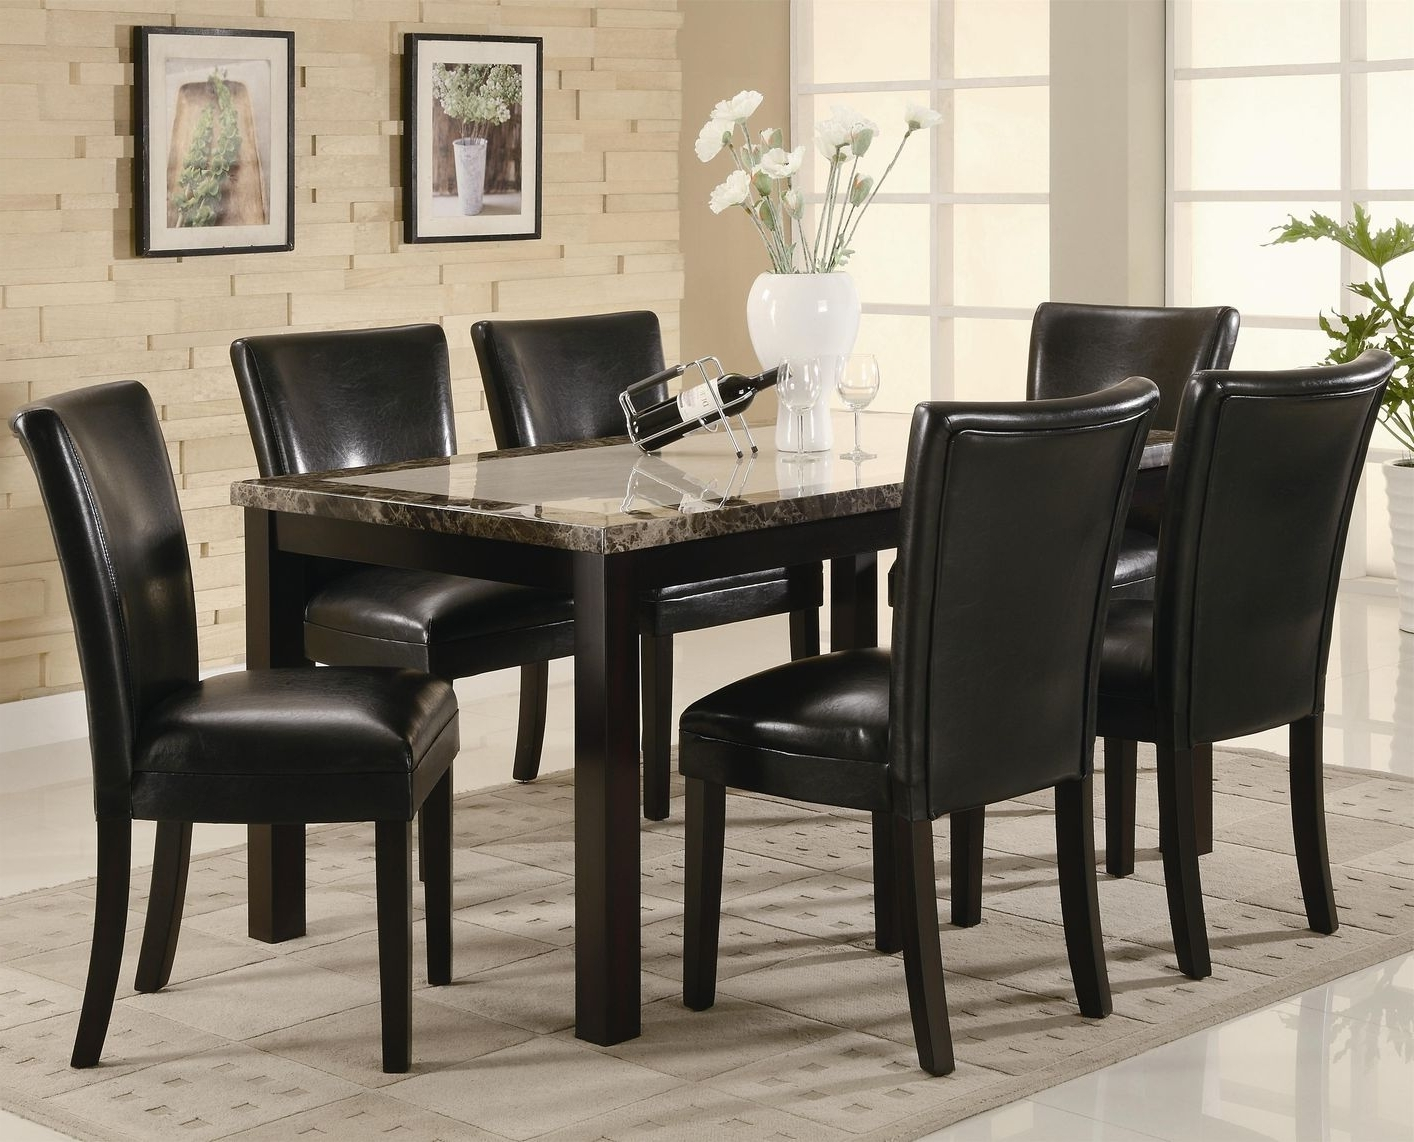 19 Dark Wood Dining Table Set, Furniture: Rustic Wooden Dining Room With Most Recent Dark Solid Wood Dining Tables (View 1 of 25)